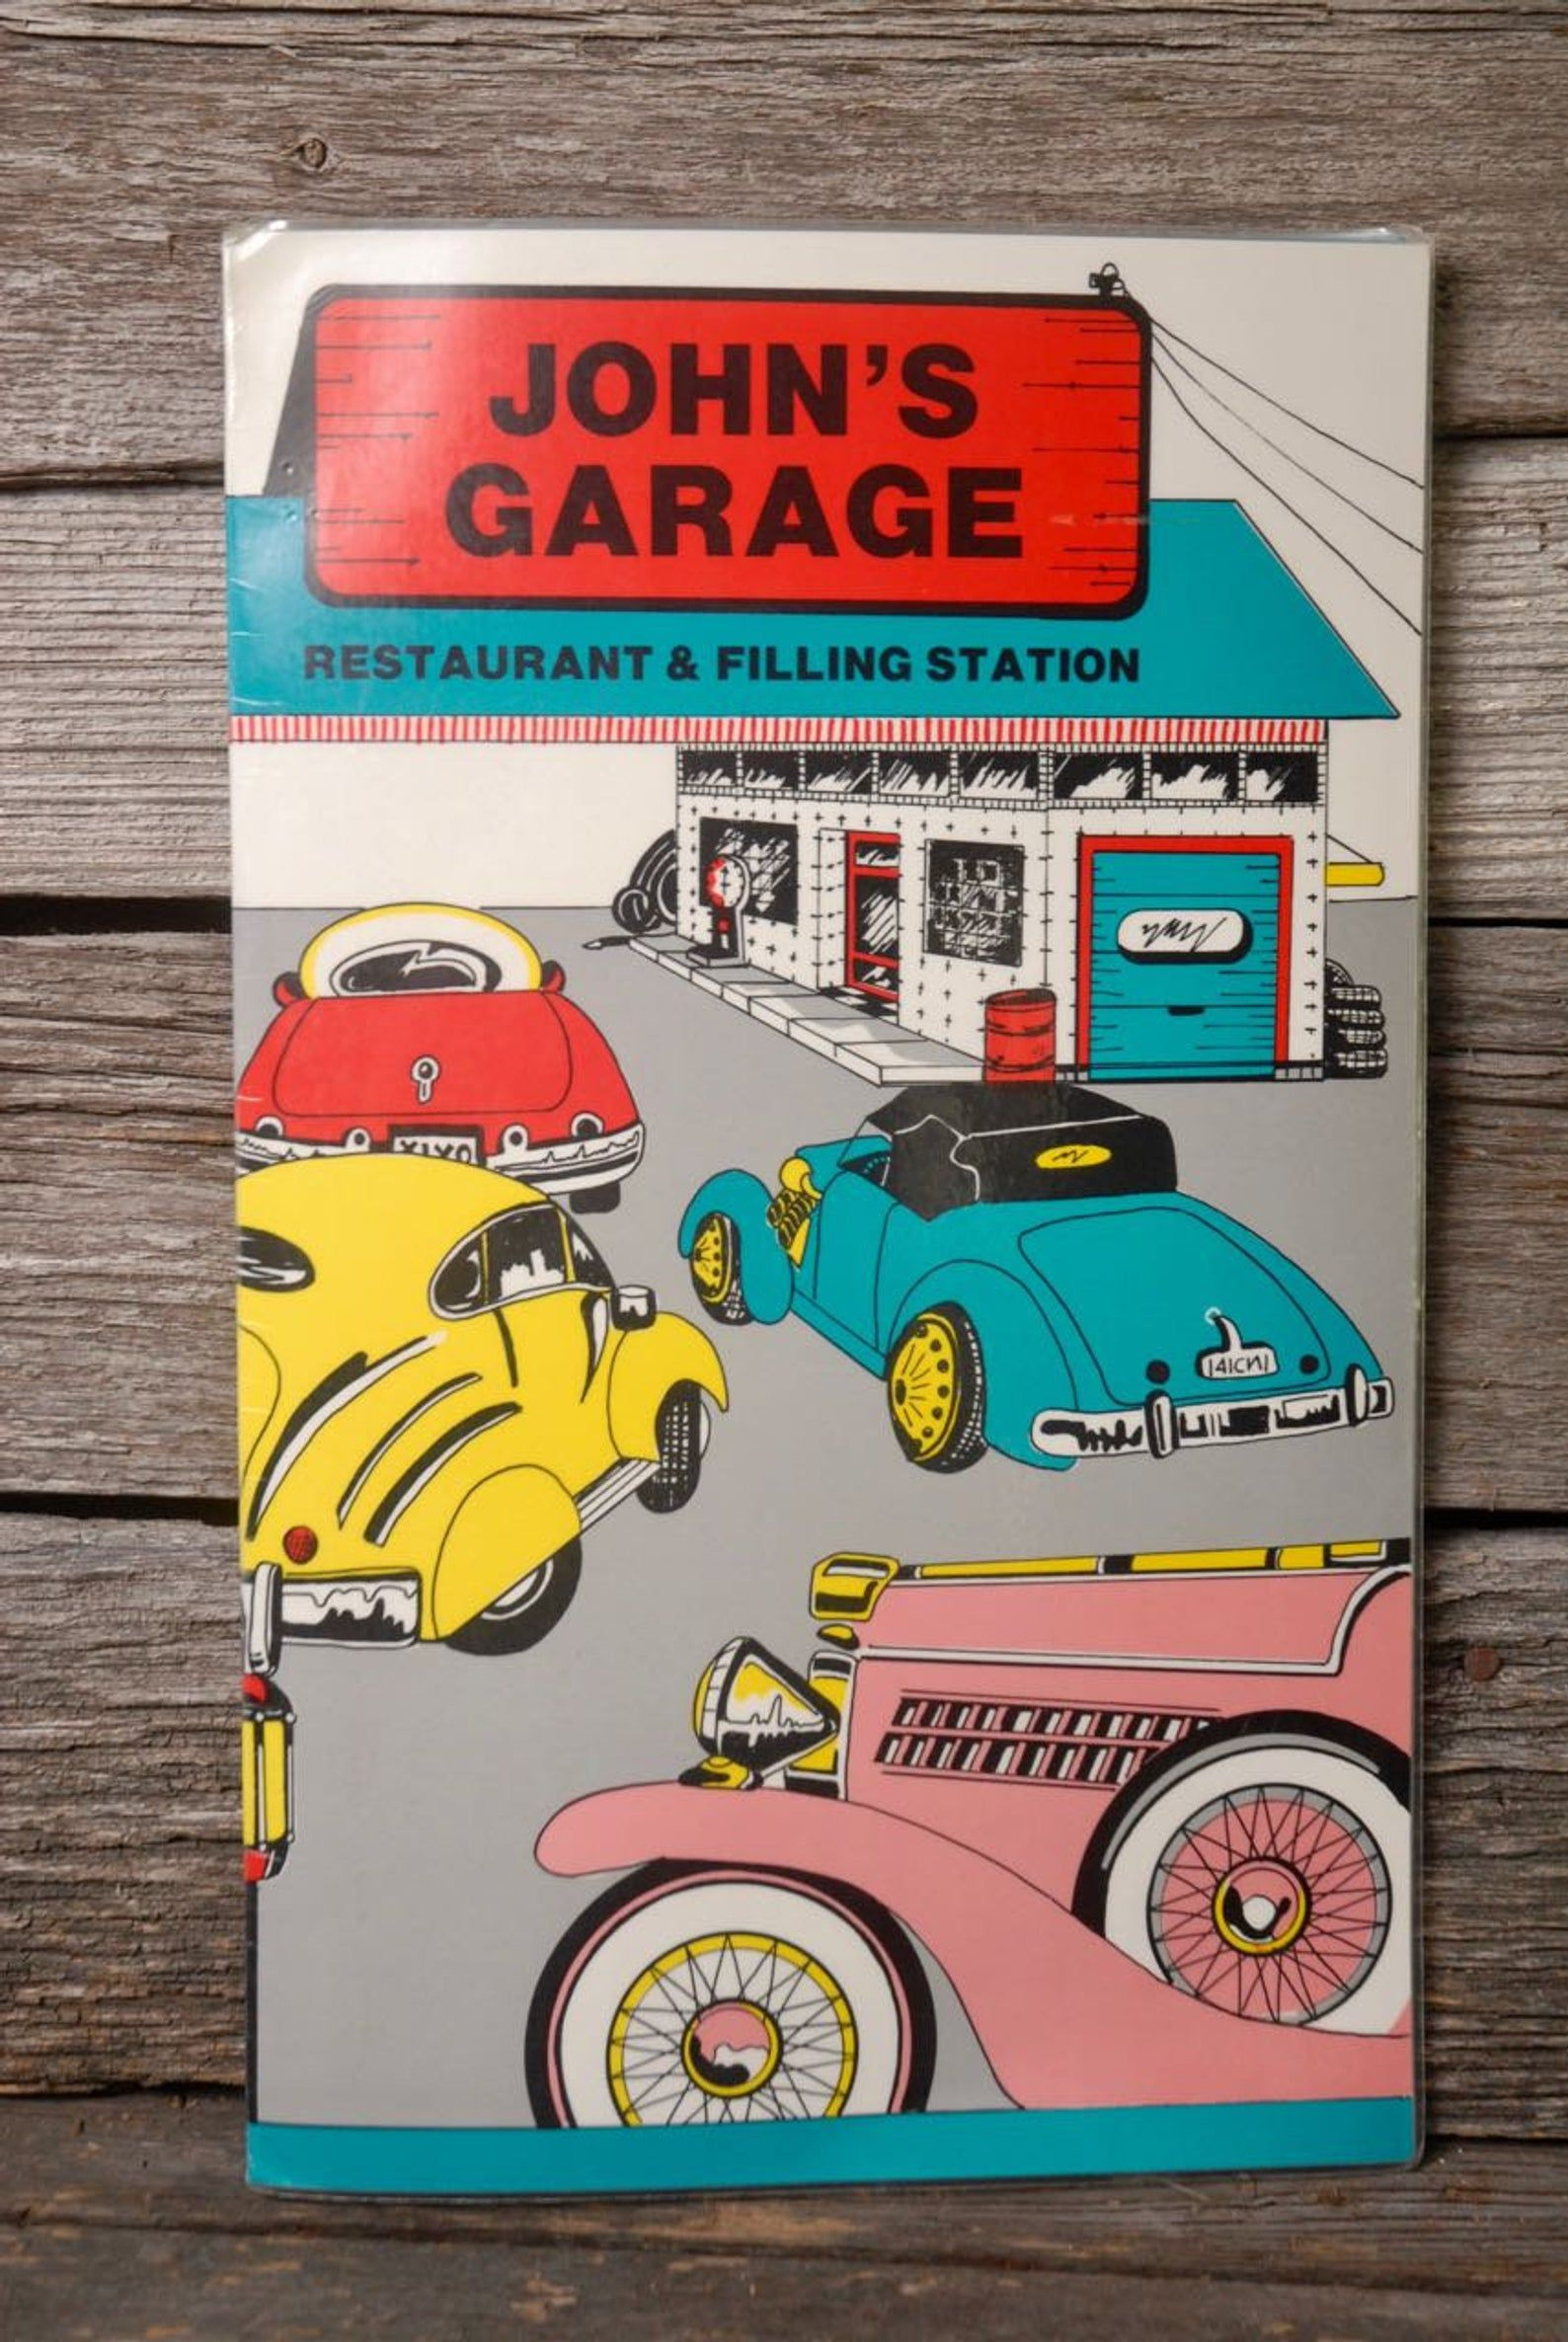 Front & back menu cover of John's Garage Restaurant. It